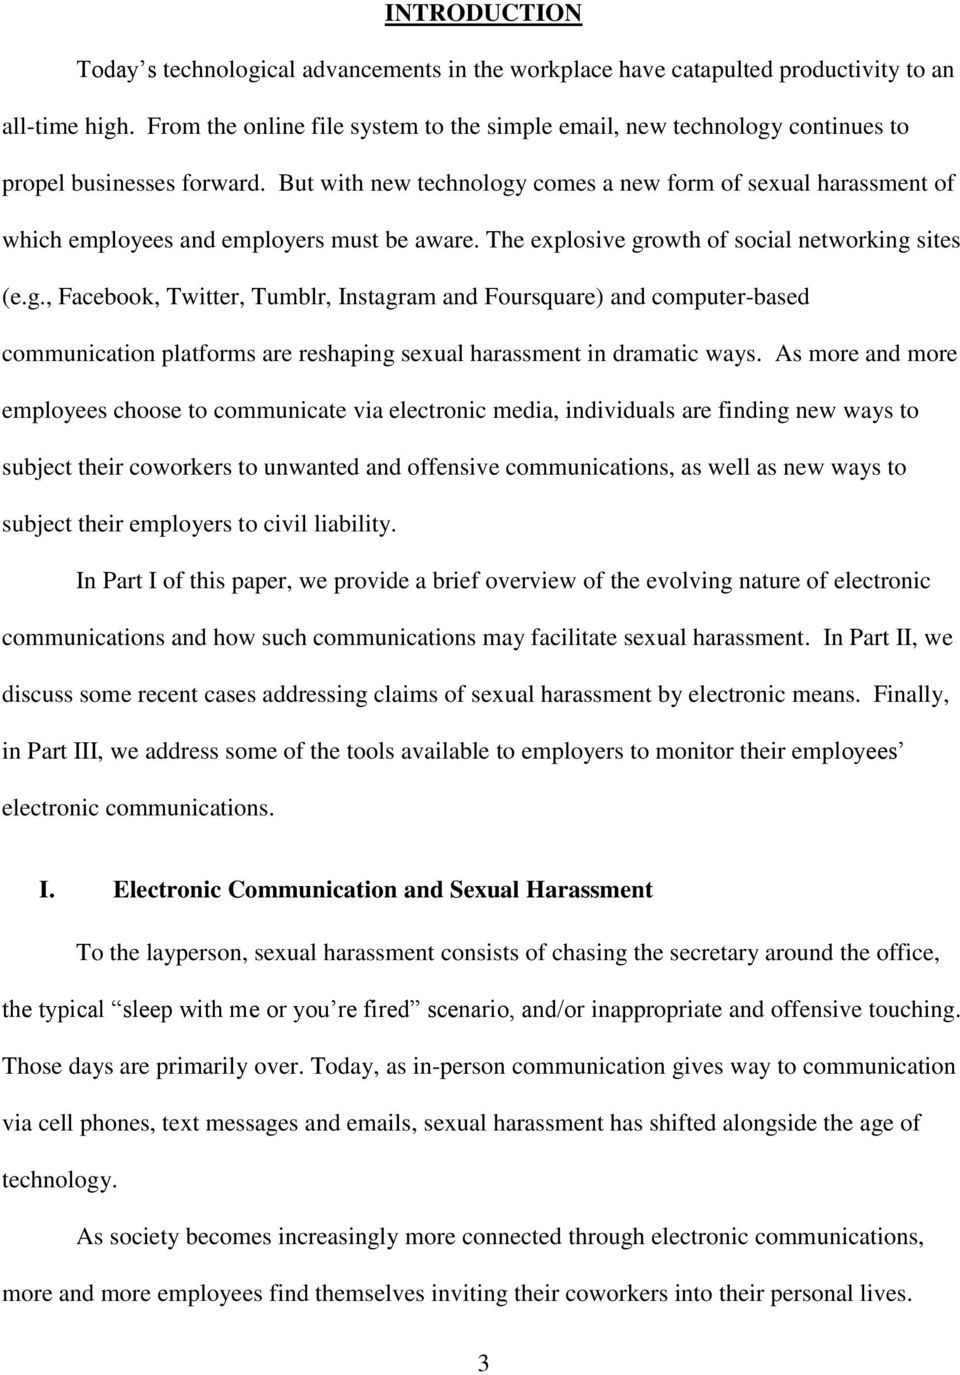 But with new technology comes a new form of sexual harassment of which employees and employers must be aware. The explosive growth of social networking sites (e.g., Facebook, Twitter, Tumblr, Instagram and Foursquare) and computer-based communication platforms are reshaping sexual harassment in dramatic ways.